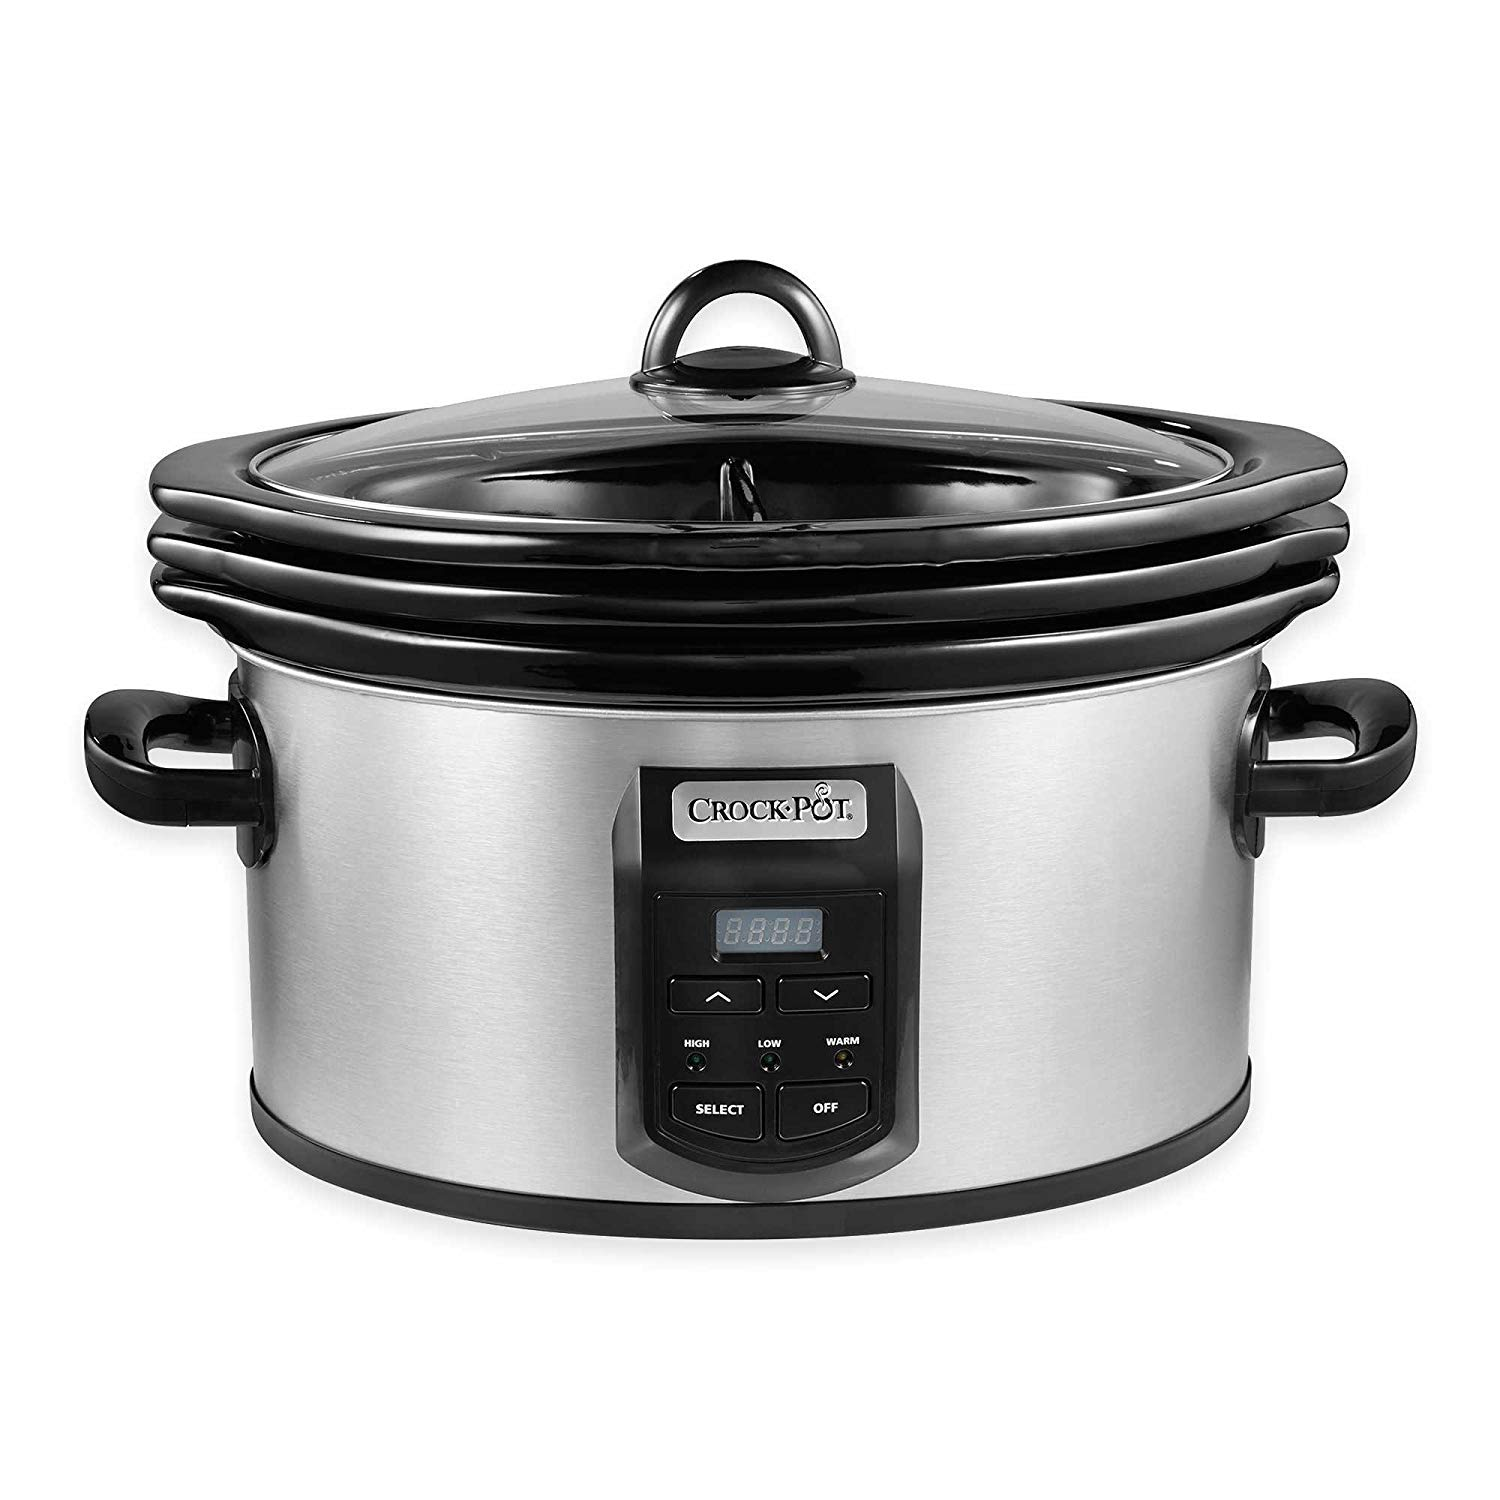 Crock-Pot SCCPVS642-S Choose-A-Crock Programmable Slow Cooker